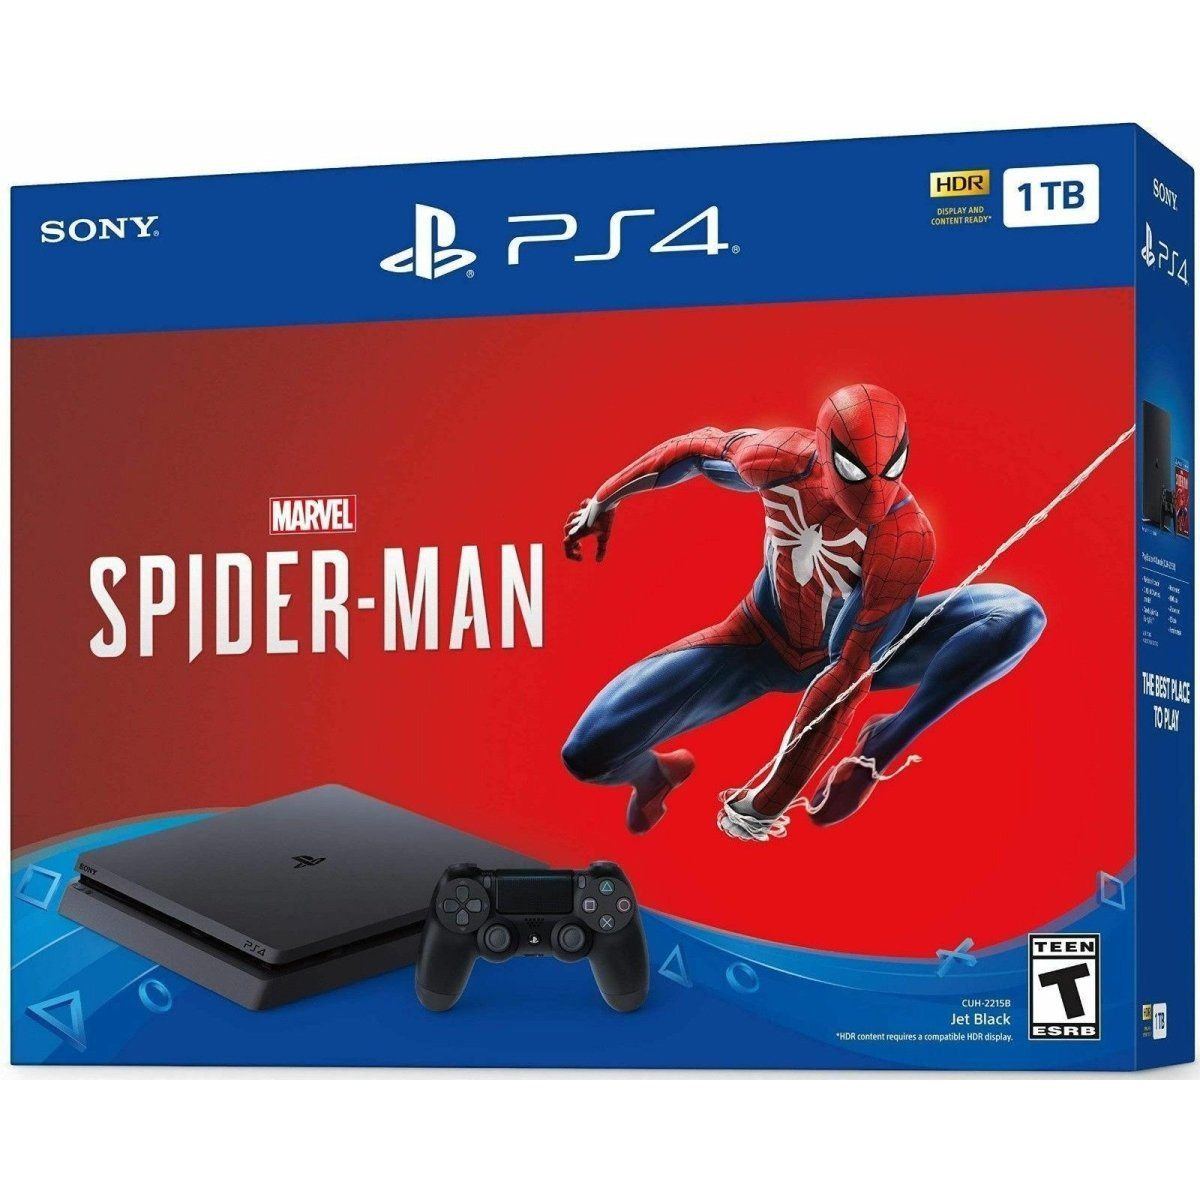 NEW Sony PlayStation 4 Slim Marvel Spiderman Bundle - Fix Or Cell Now Device Shop